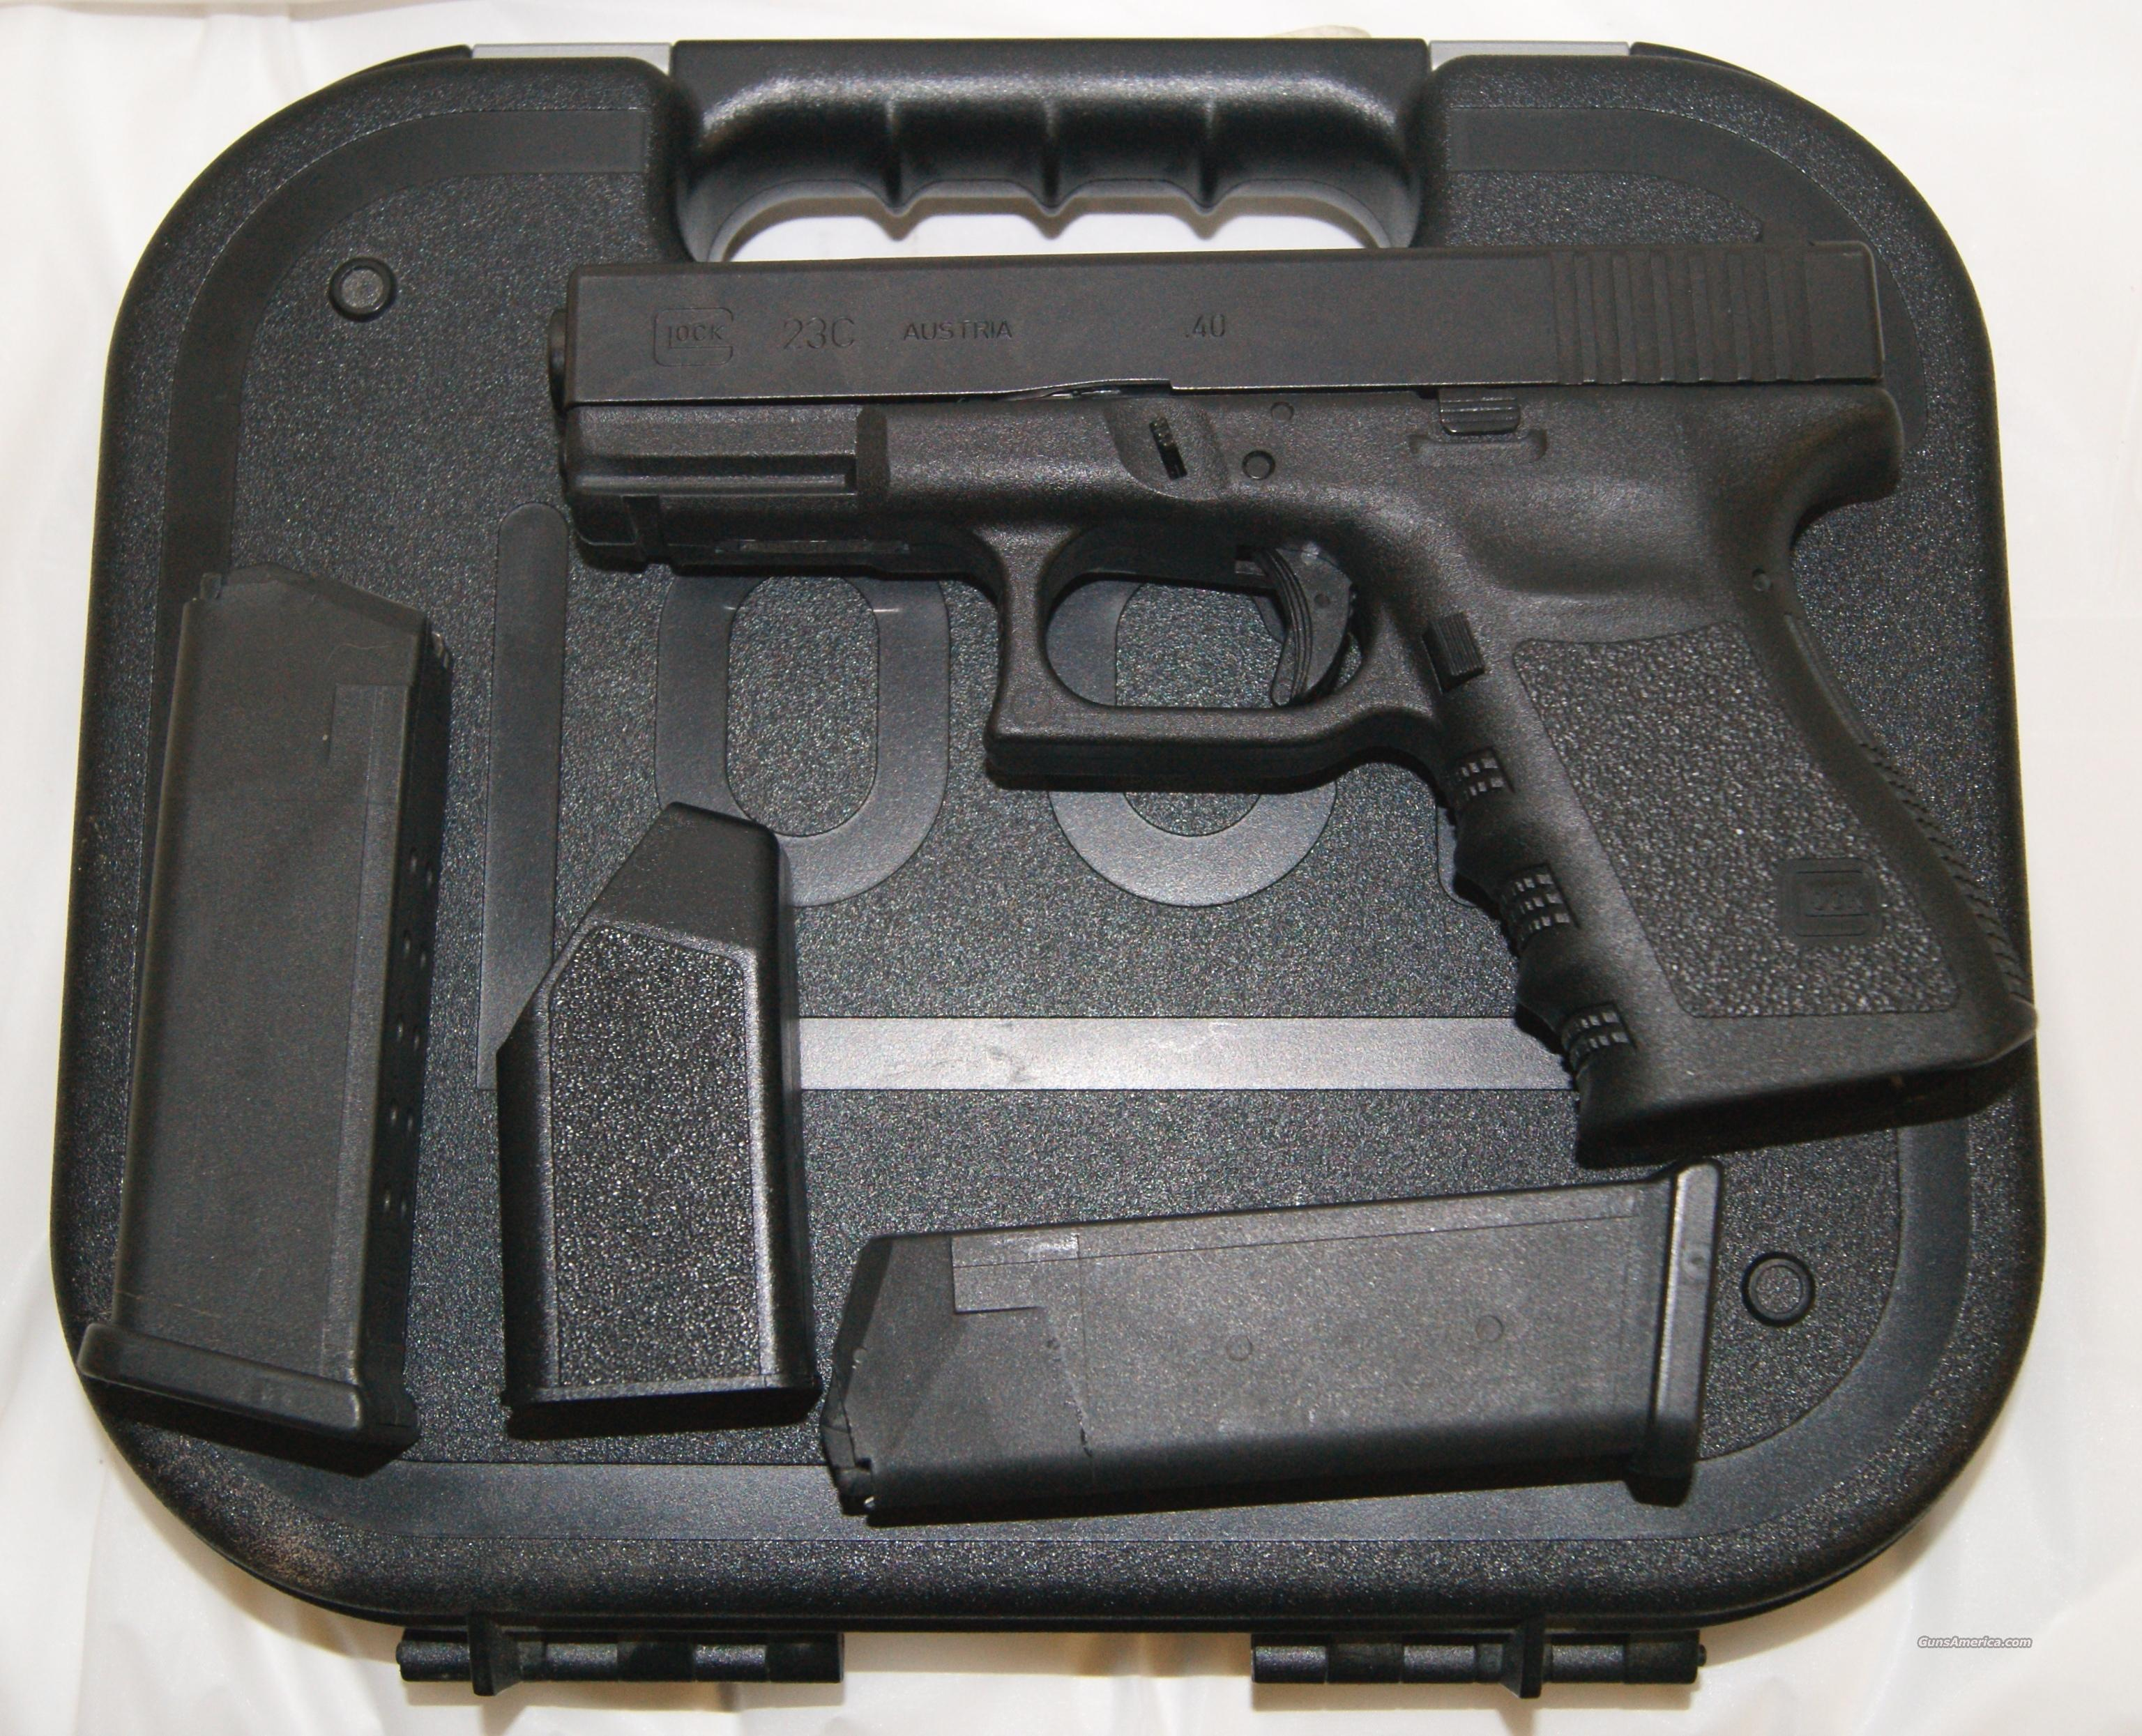 Glock 23C Compact Ported 40 S&W Like New   Guns > Pistols > Glock Pistols > 23